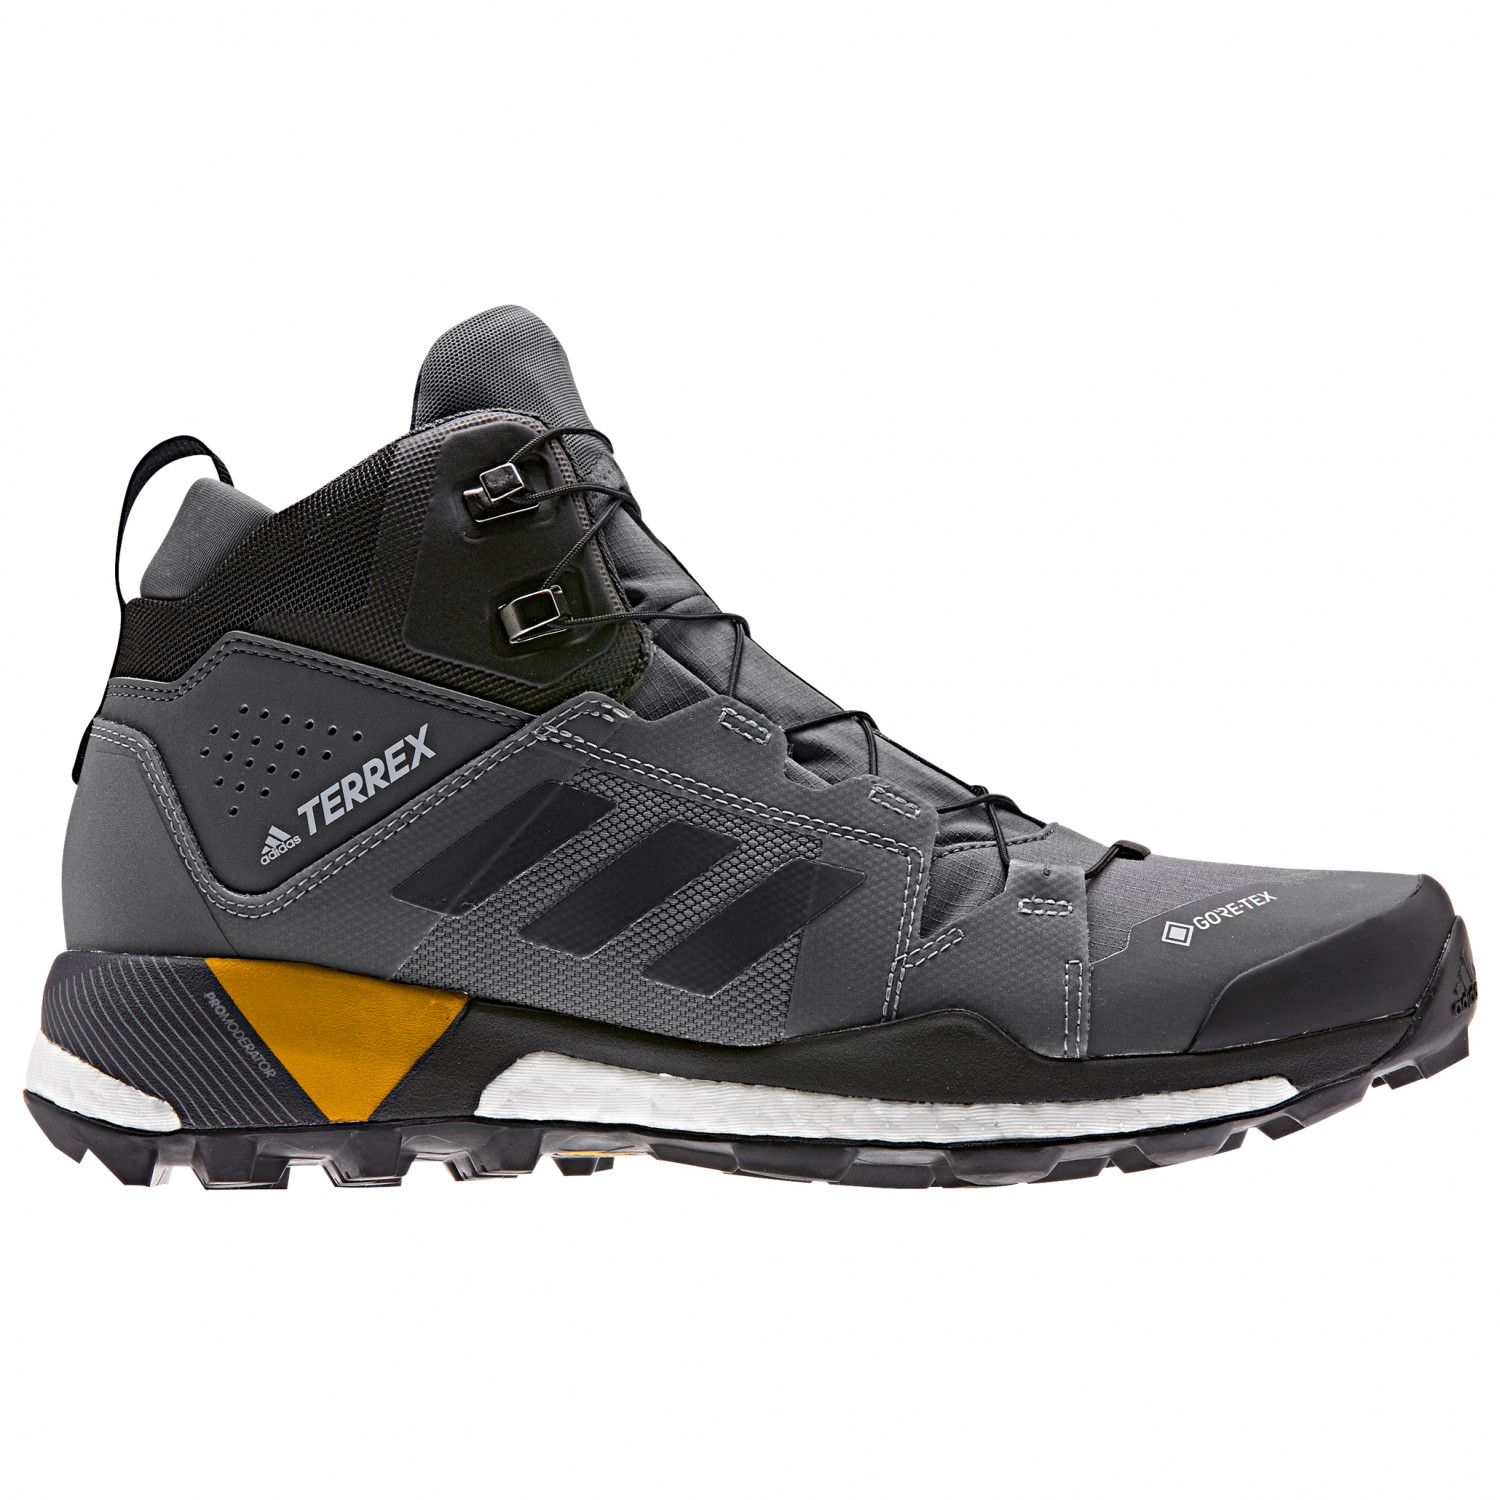 check out f422d 09bff adidas - Terrex Skychaser XT Mid GTX - Approachschuhe - Core Black / Grey  Five / Collegiate Royal | 7 (UK)